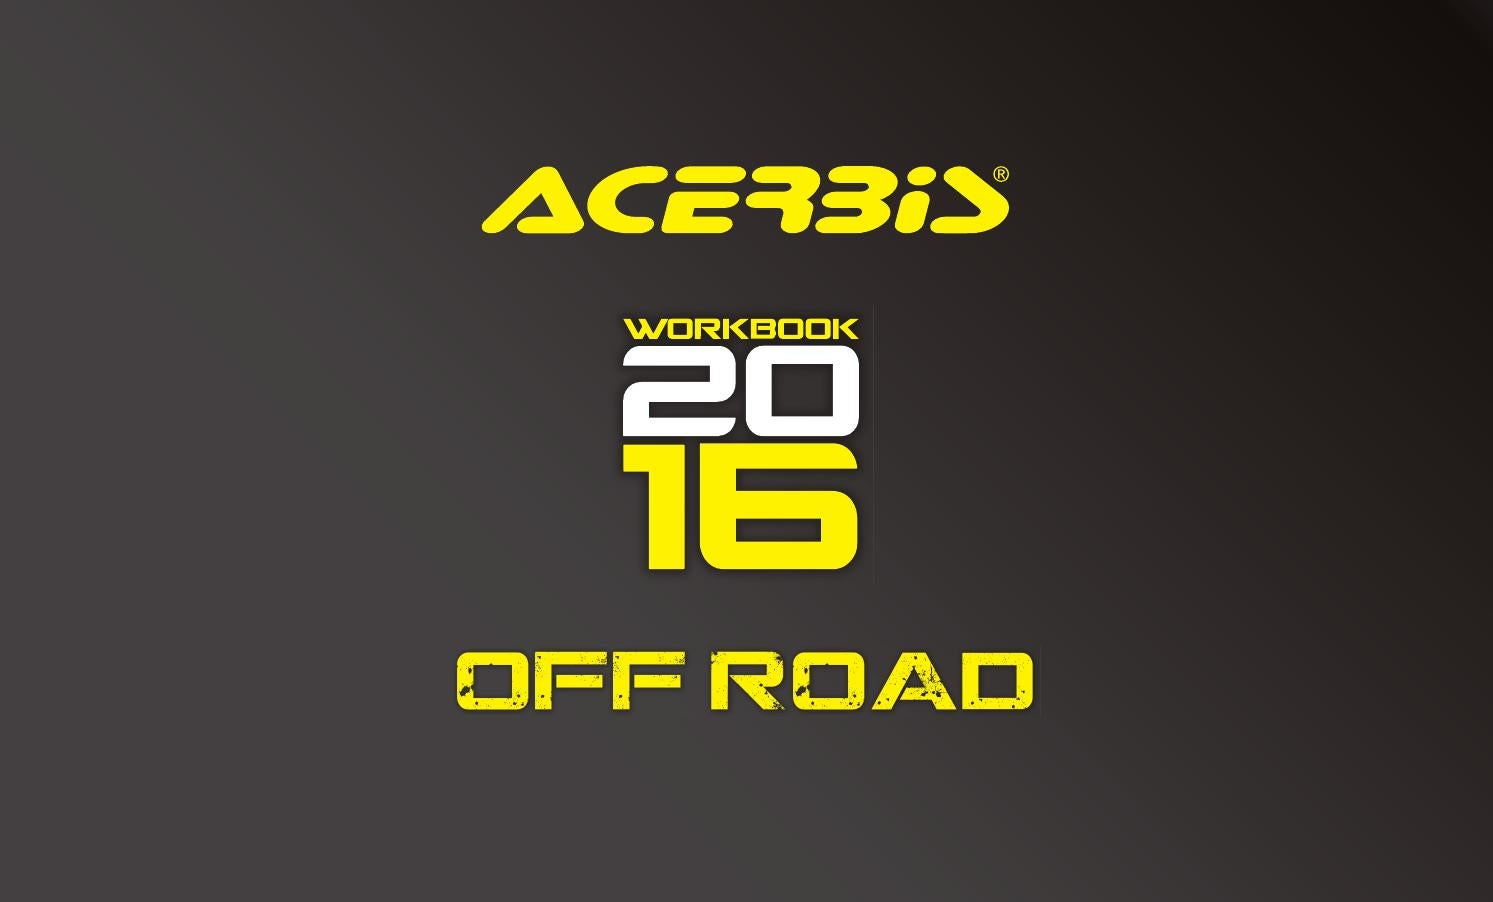 Acerbis Workbook 2016 by Mefo Sport issuu